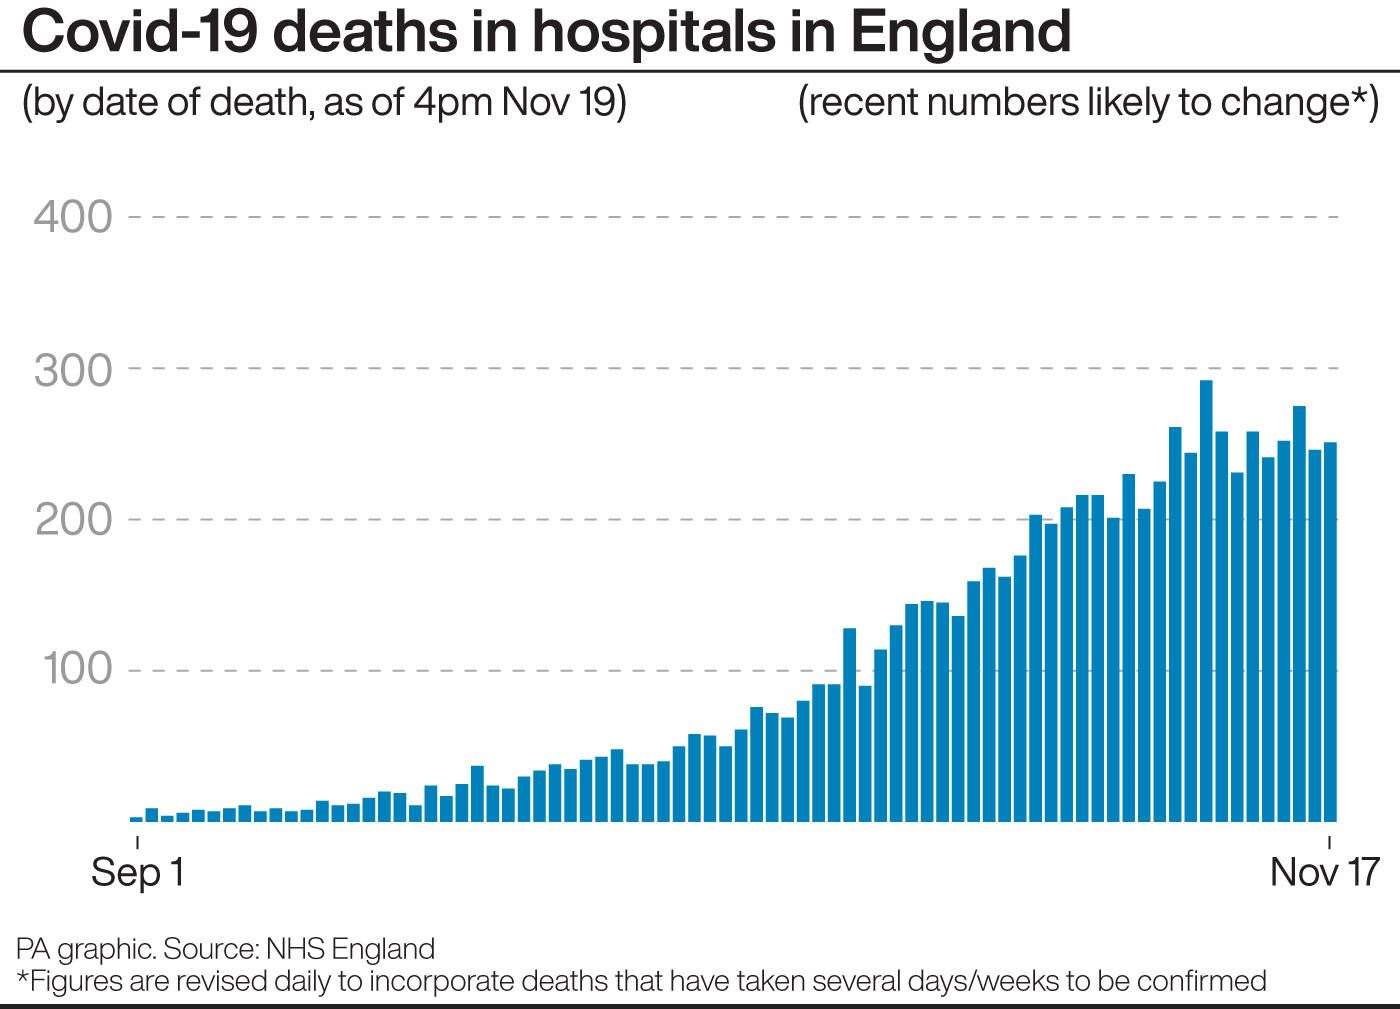 Covid-19 deaths in hospitals in England (PA Graphics)